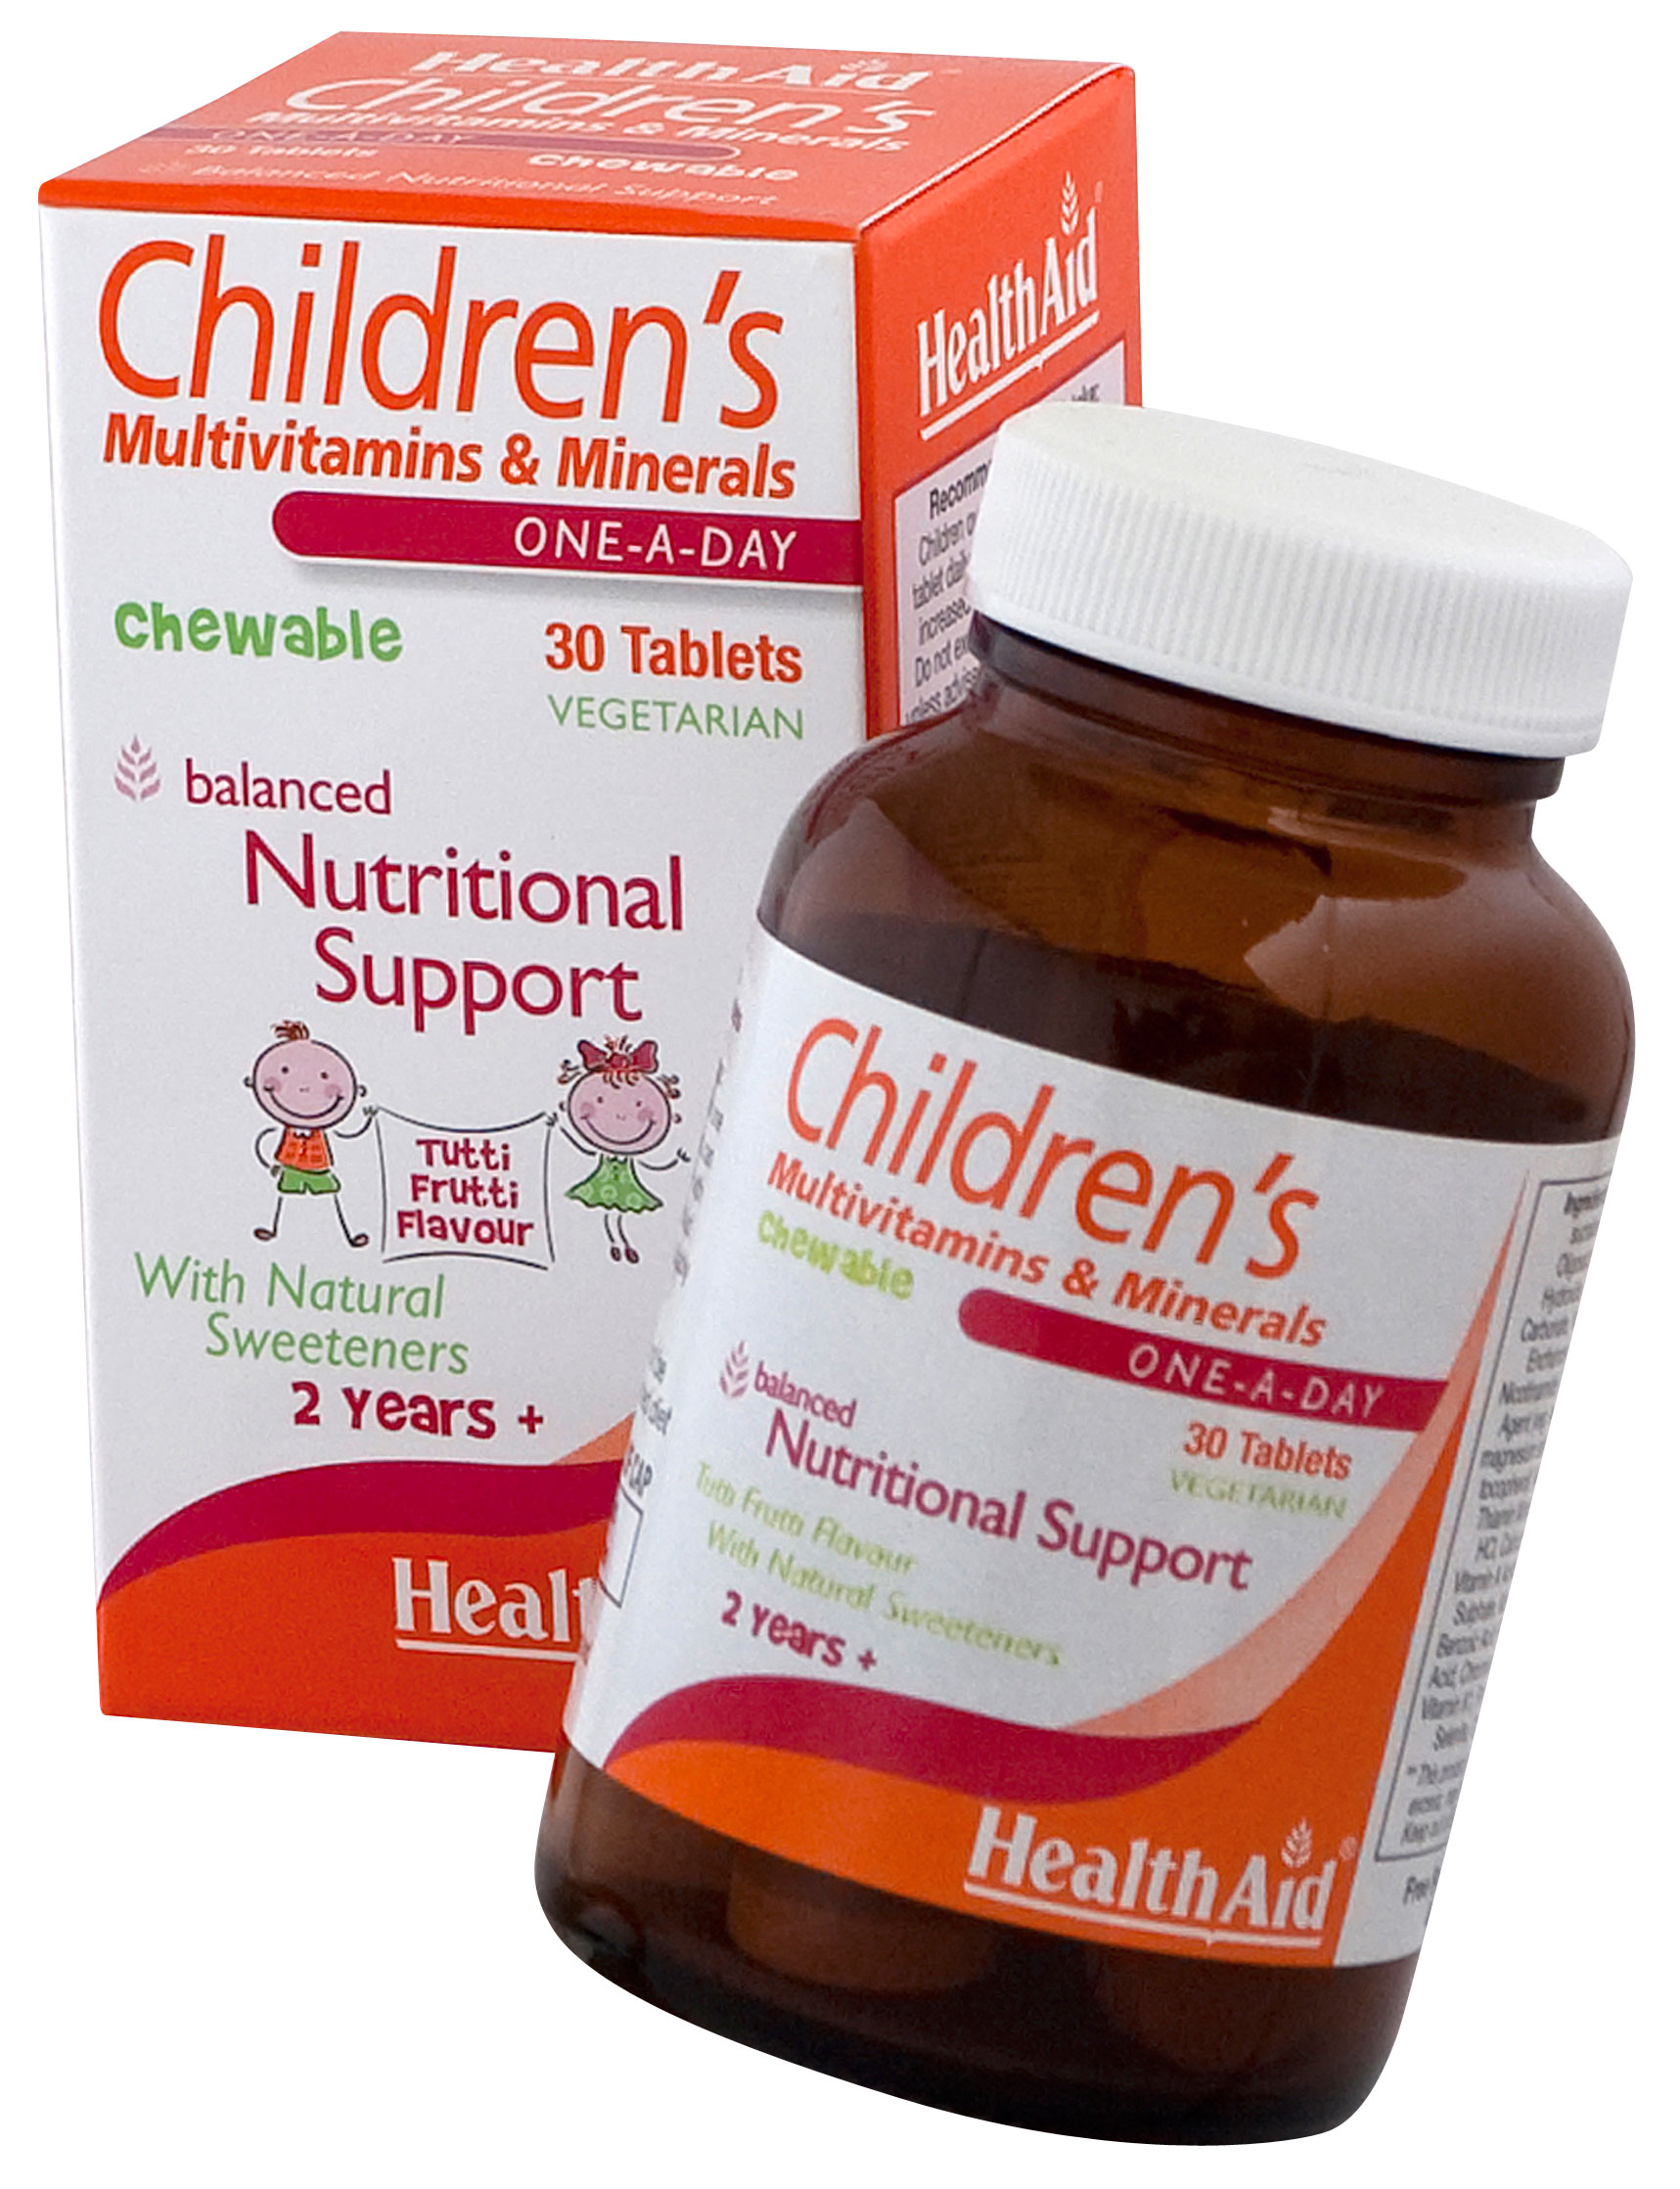 HealthAid Childrens MultiVitamins And Minerals - 30 Chewable Tablets  available at Nykaa for Rs.765